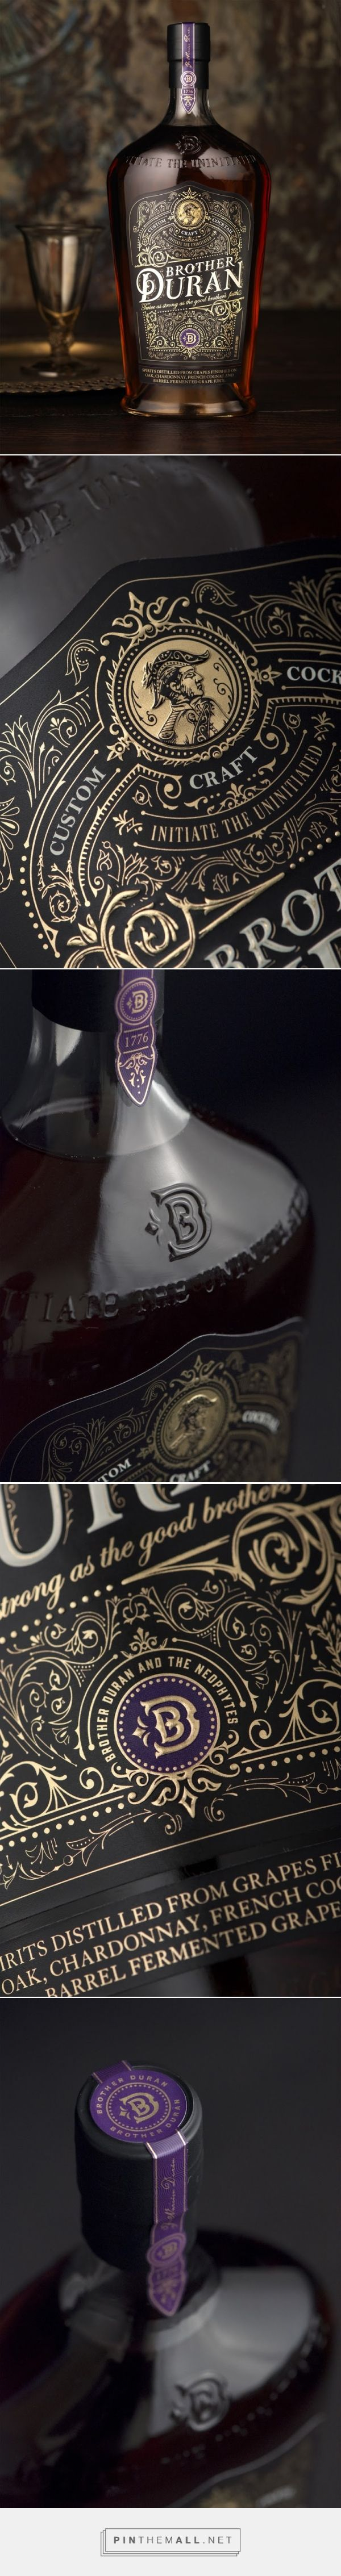 Brother Duran spirits packaging designed by CF NAPA Brand Design - http://www.packagingoftheworld.com/2015/11/brother-duran.html